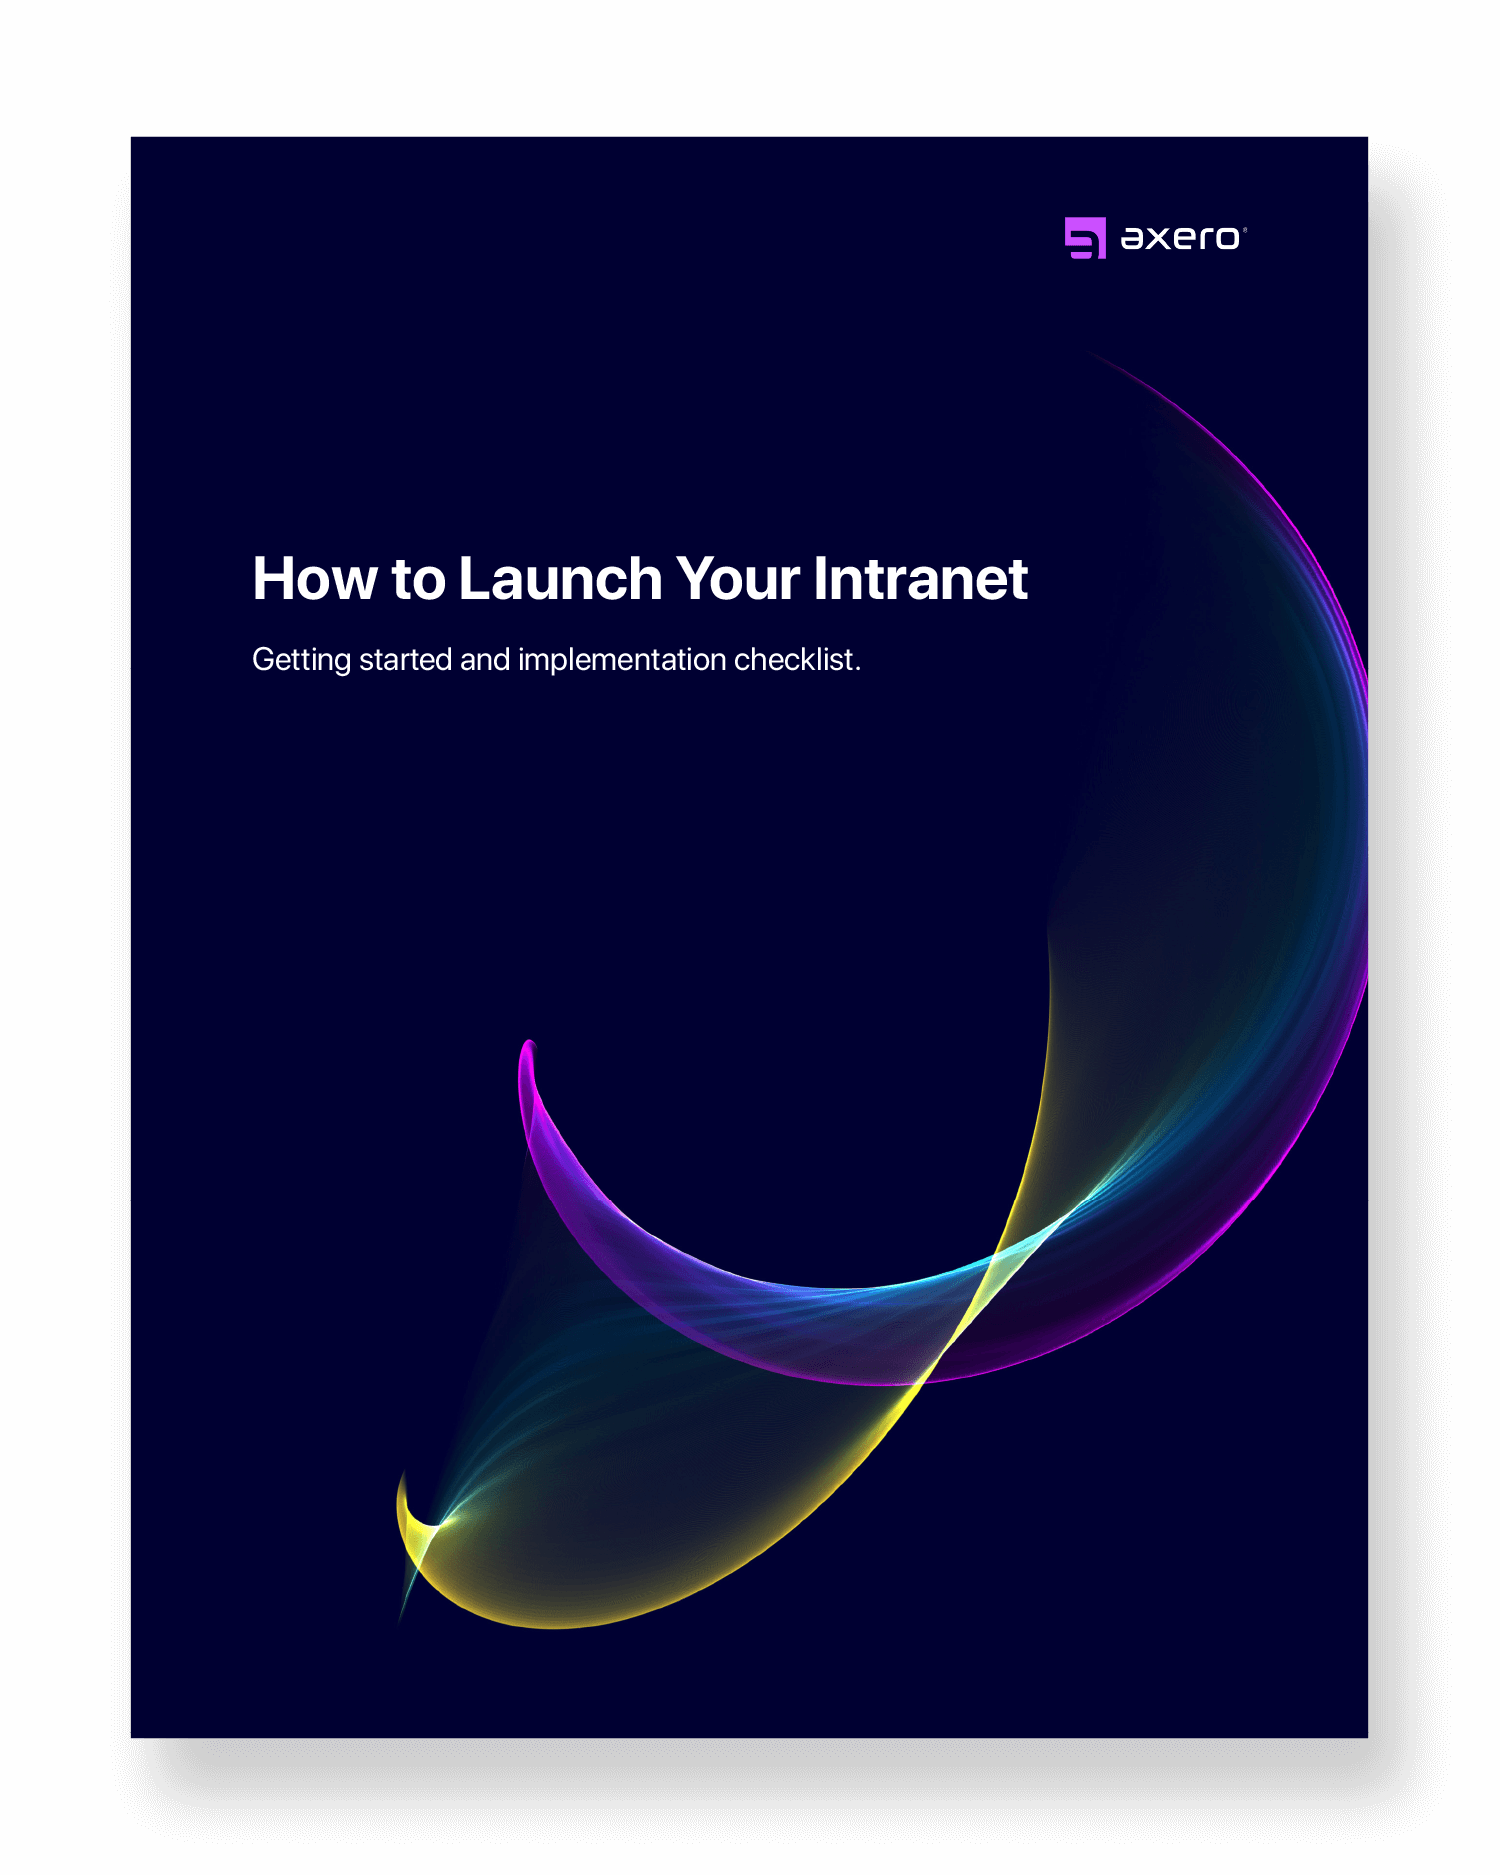 How to Launch Your Intranet: Getting Started and Implementation Checklist